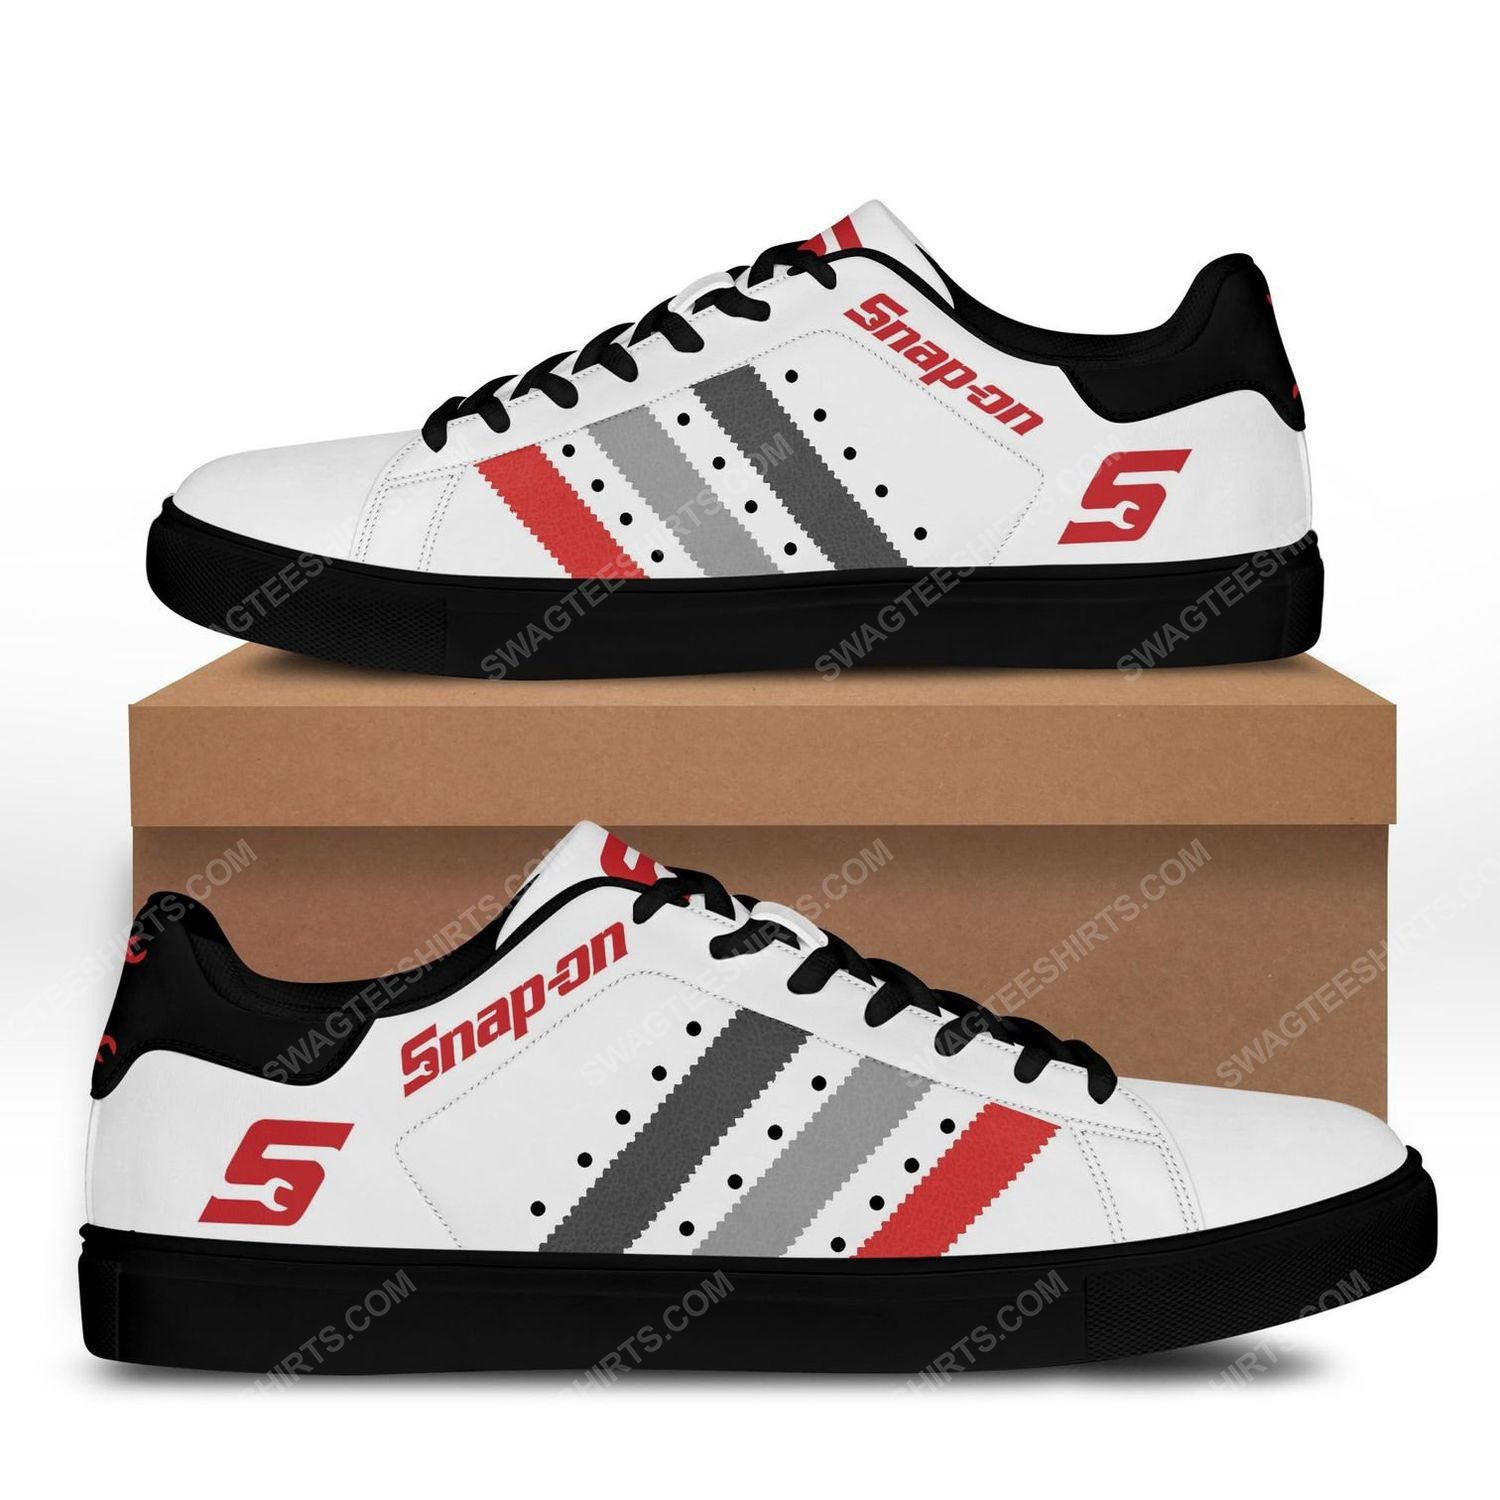 The snap-on version white stan smith shoes - black 1